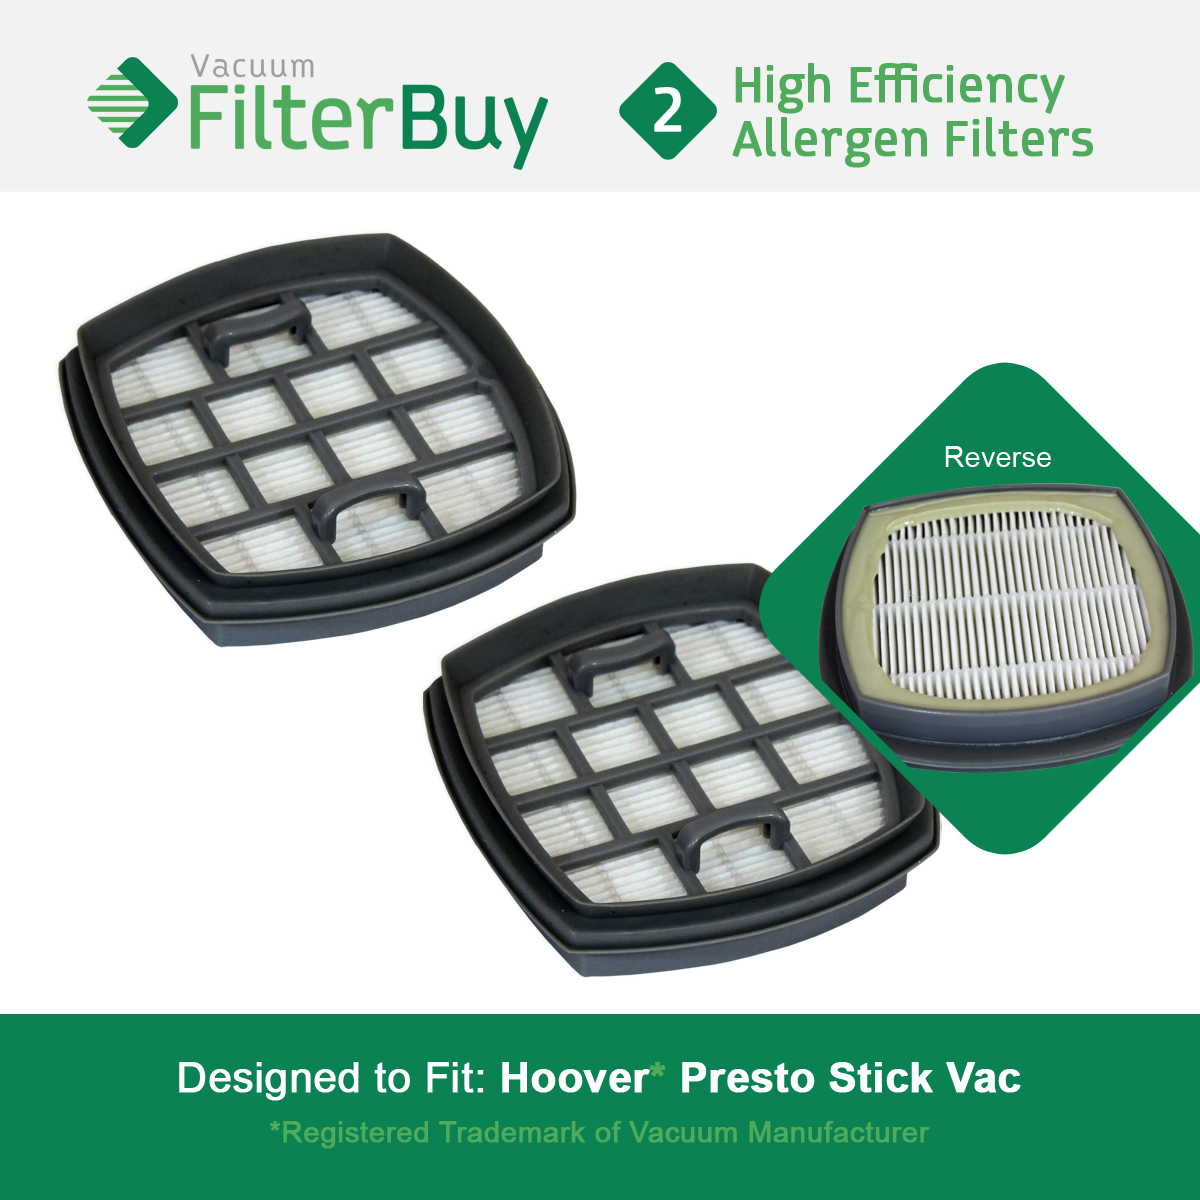 2 - Hoover Presto Stick Vacuum Filter, Part # 440002094.  Designed by FilterBuy to replace Hoover Presto 2-in-1 Cordless Stick Vacuum.